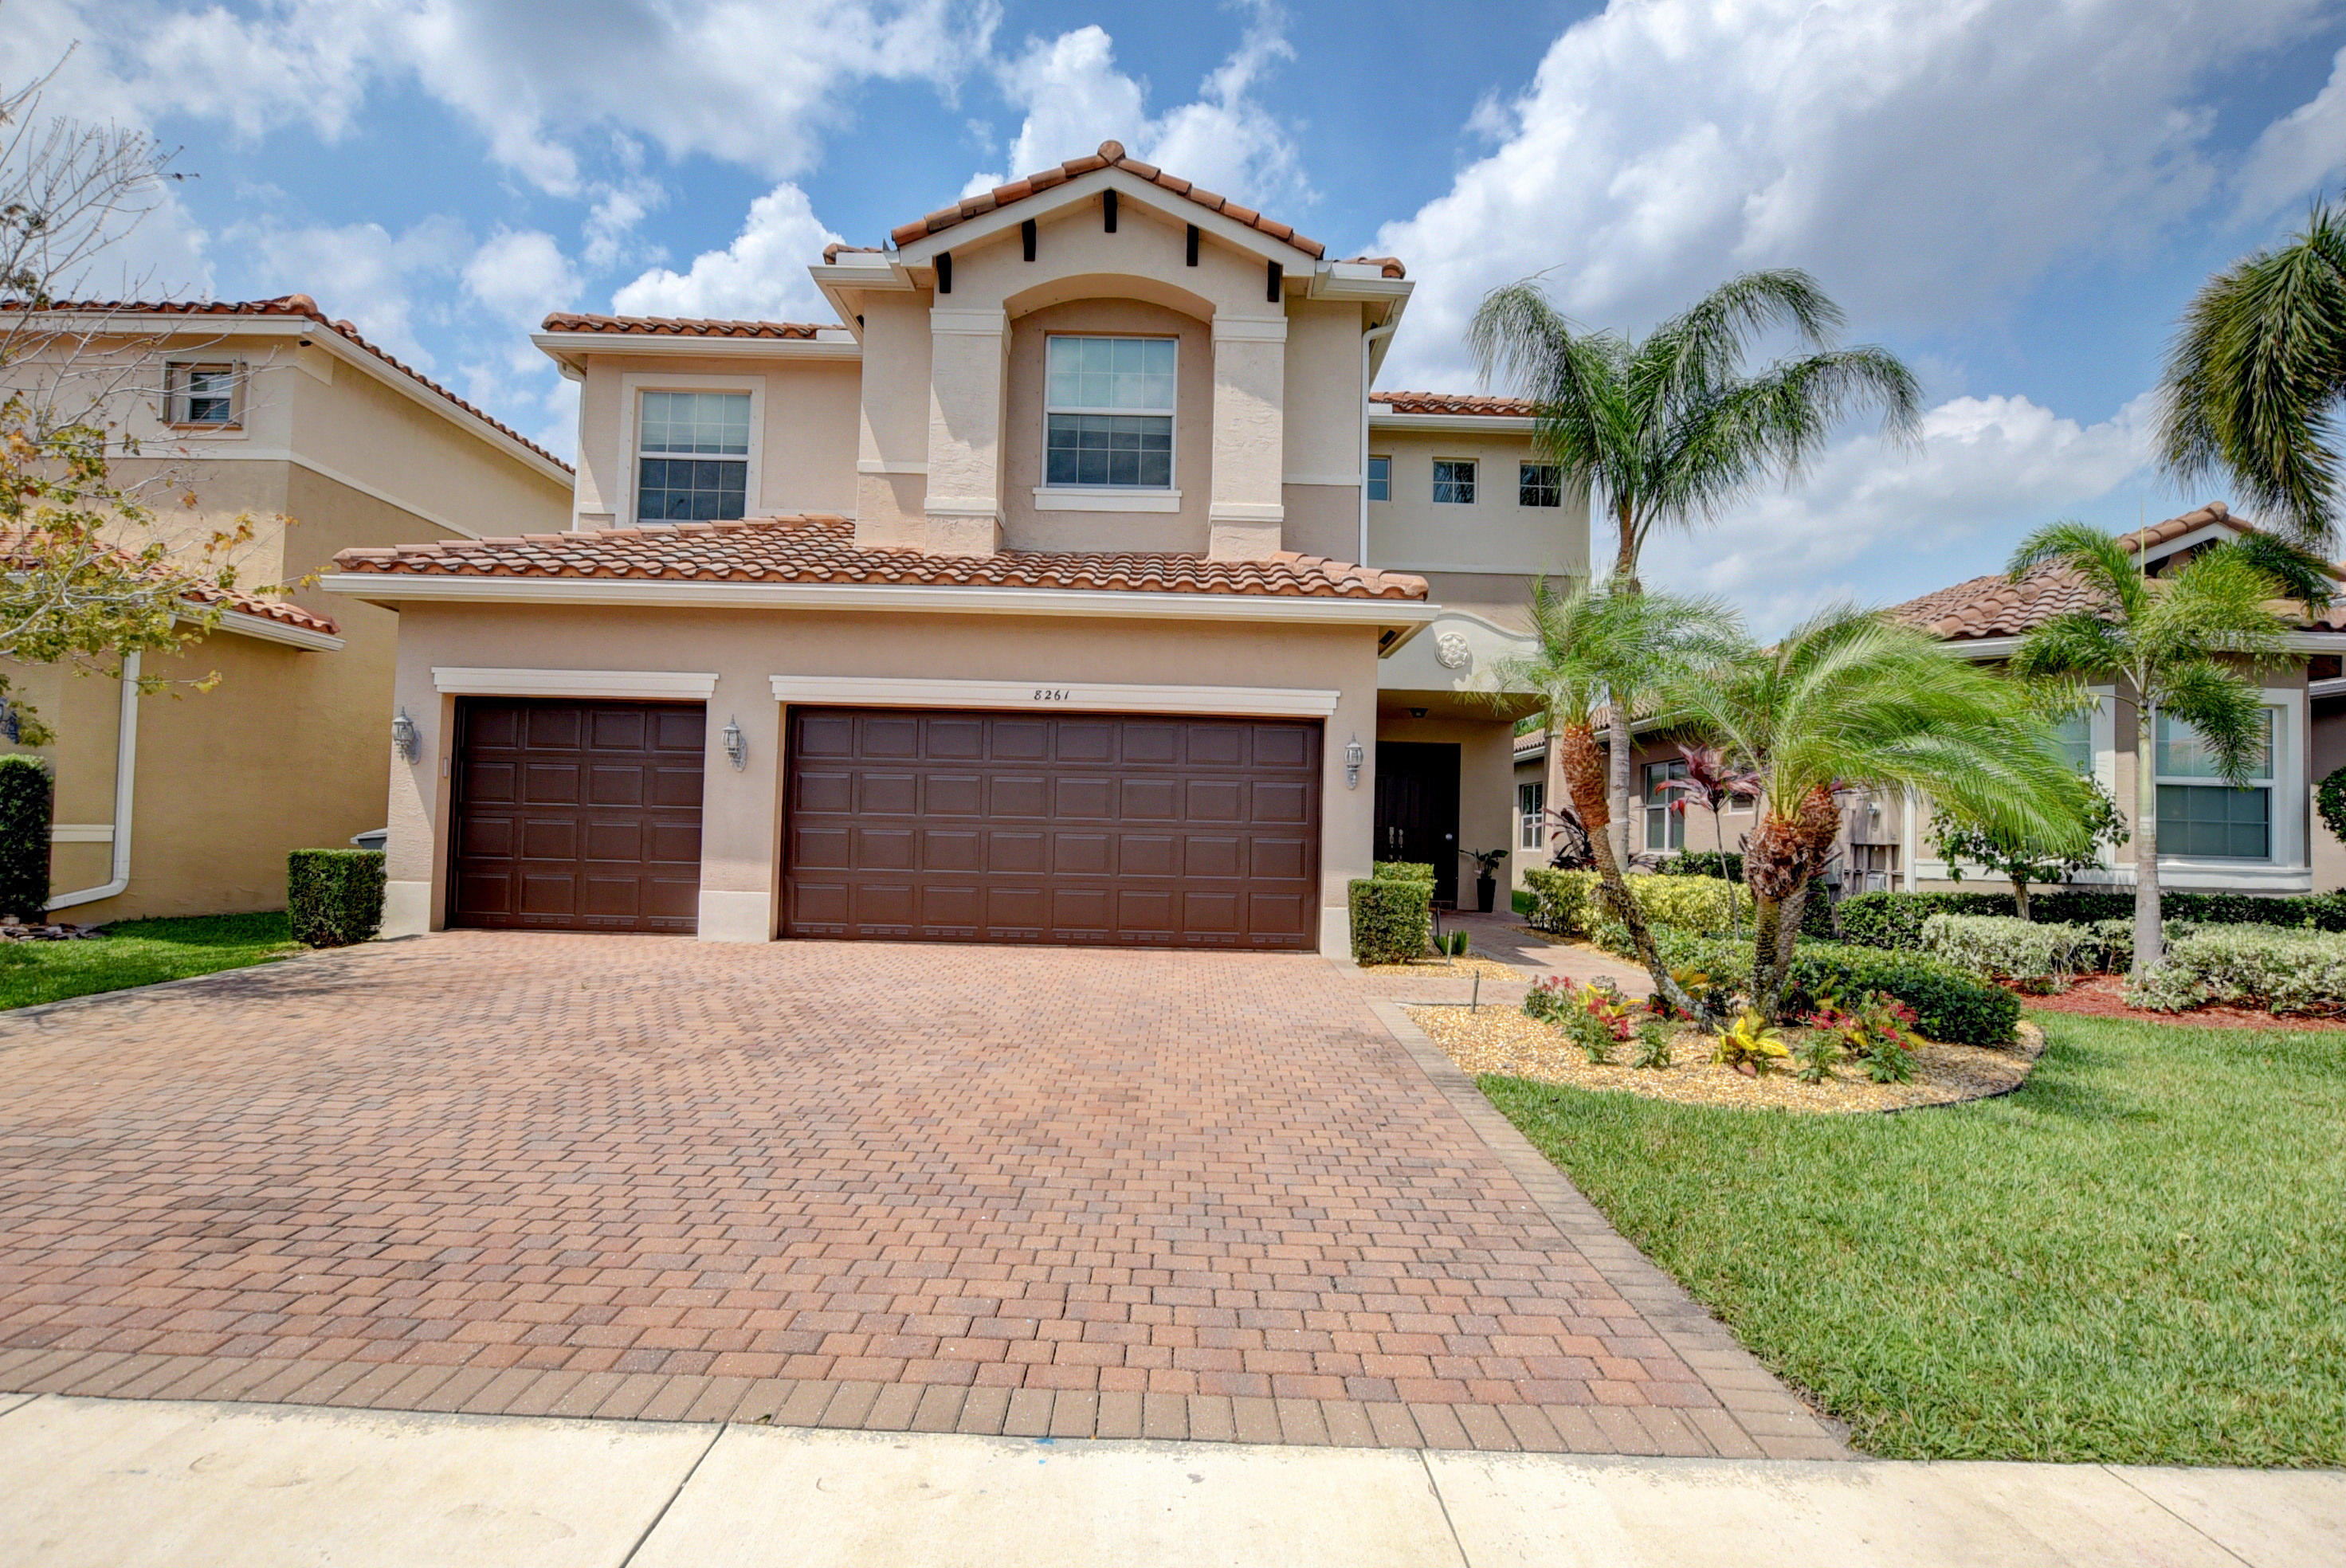 8261 Savara Streams Lane  Boynton Beach, FL 33473